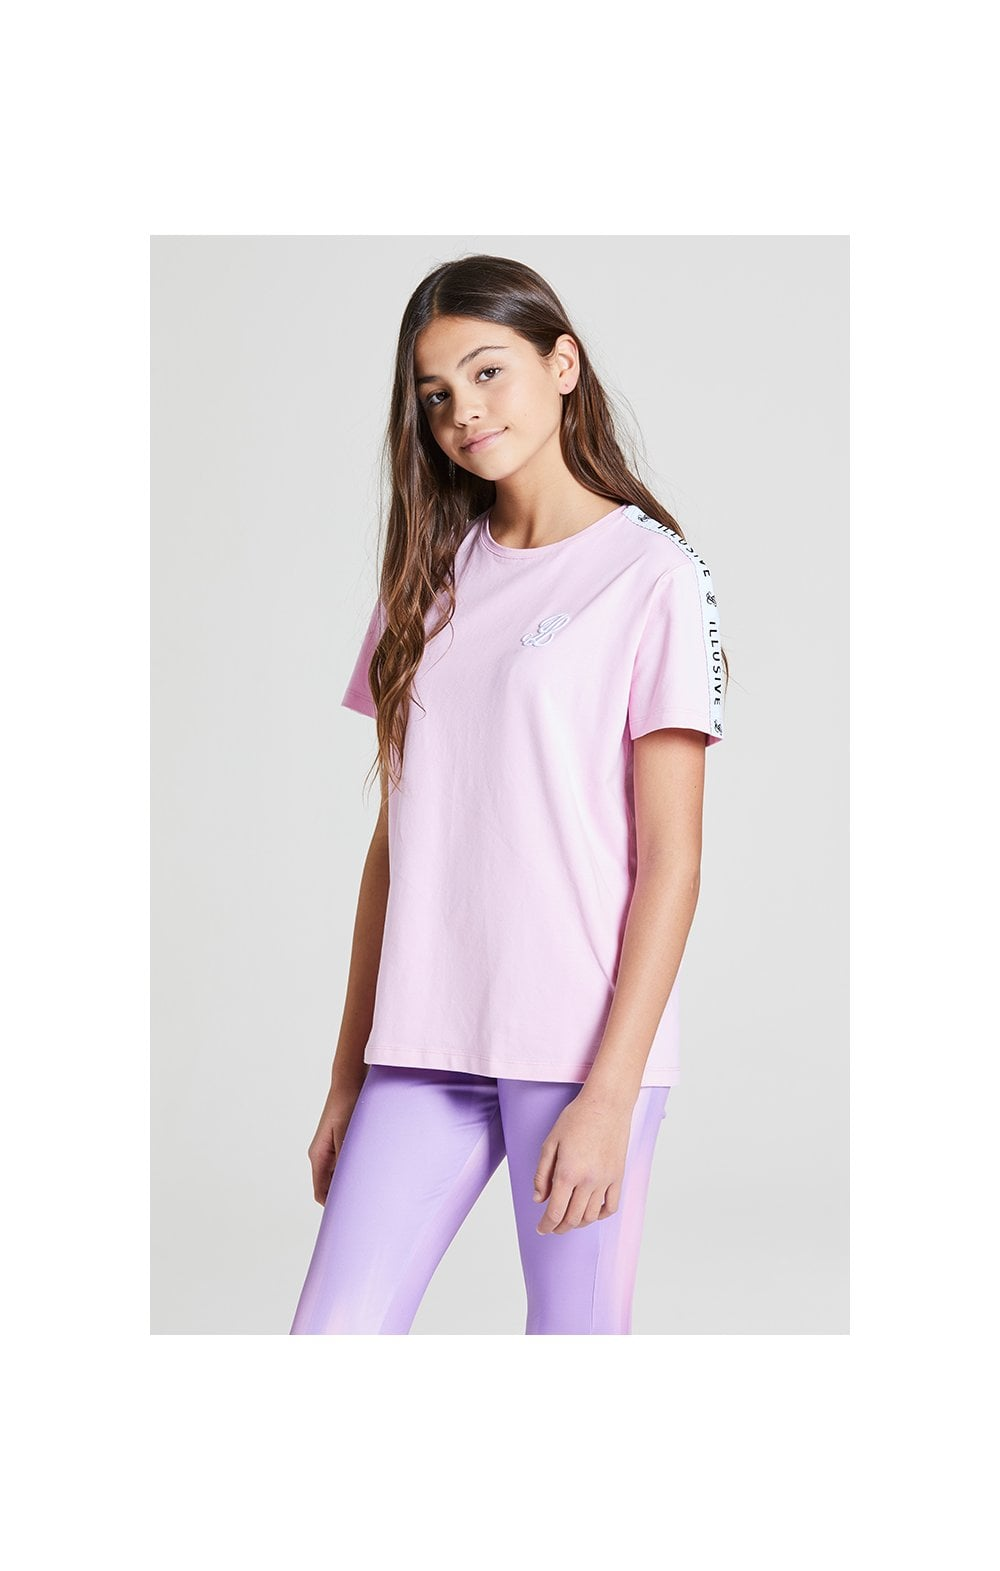 Illusive London BF Fit Taped Tee -  Pink (1)